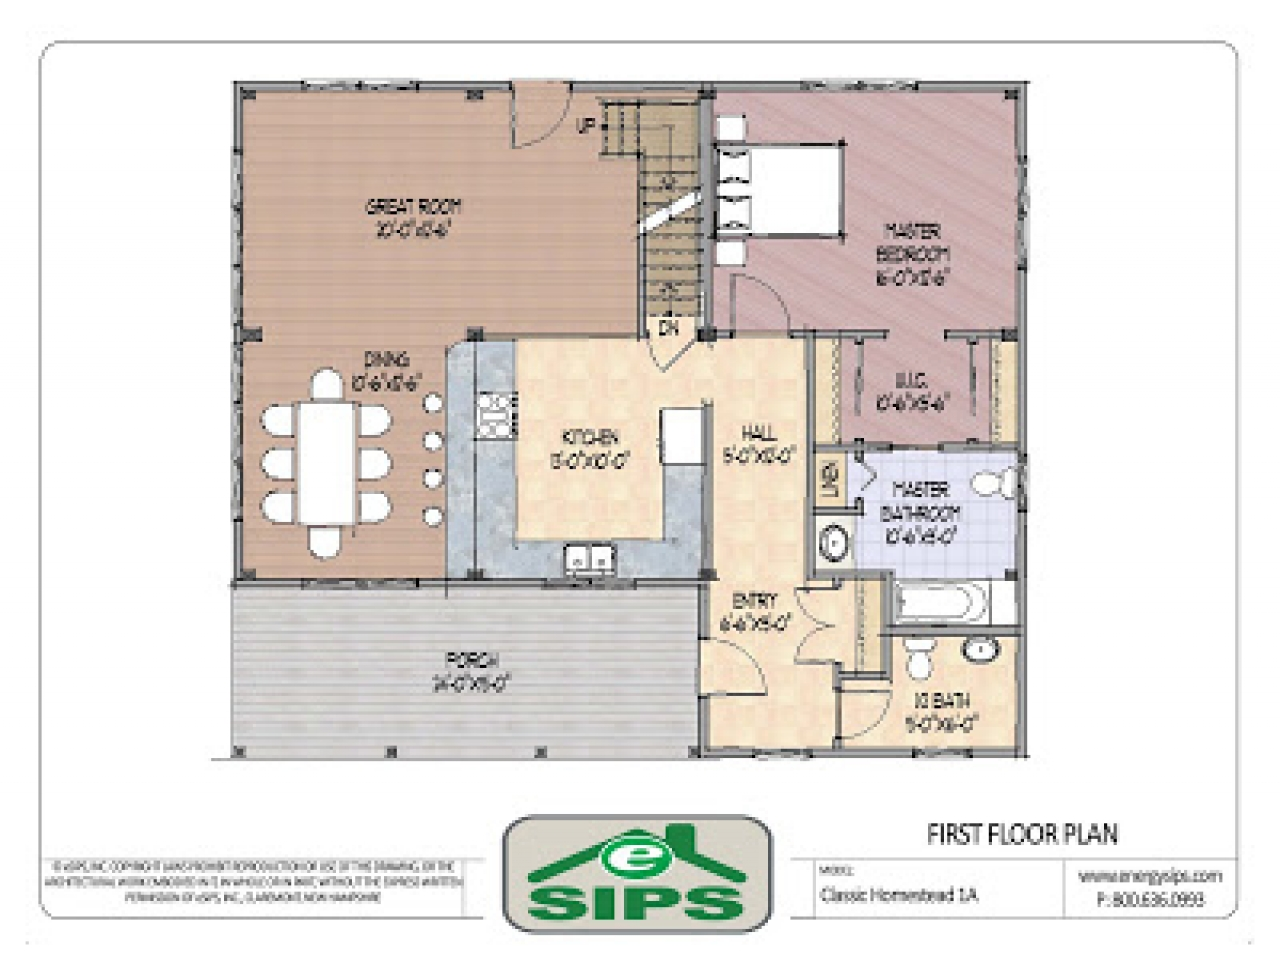 Raised House Plans Energy Efficient on decorative house plans, country cottage house plans, ranch house plans, title 24 house plans, energy efficiency, solar house plans, eco-friendly house plans, low profile house plans, green home plans, narrow lot house plans, zero energy home plans, sustainable house plans, small house plans, entrance courtyard house plans, luxury house plans, space-efficient house plans, economical house plans, bungalow house plans, recycled house plans, sip panel plans,